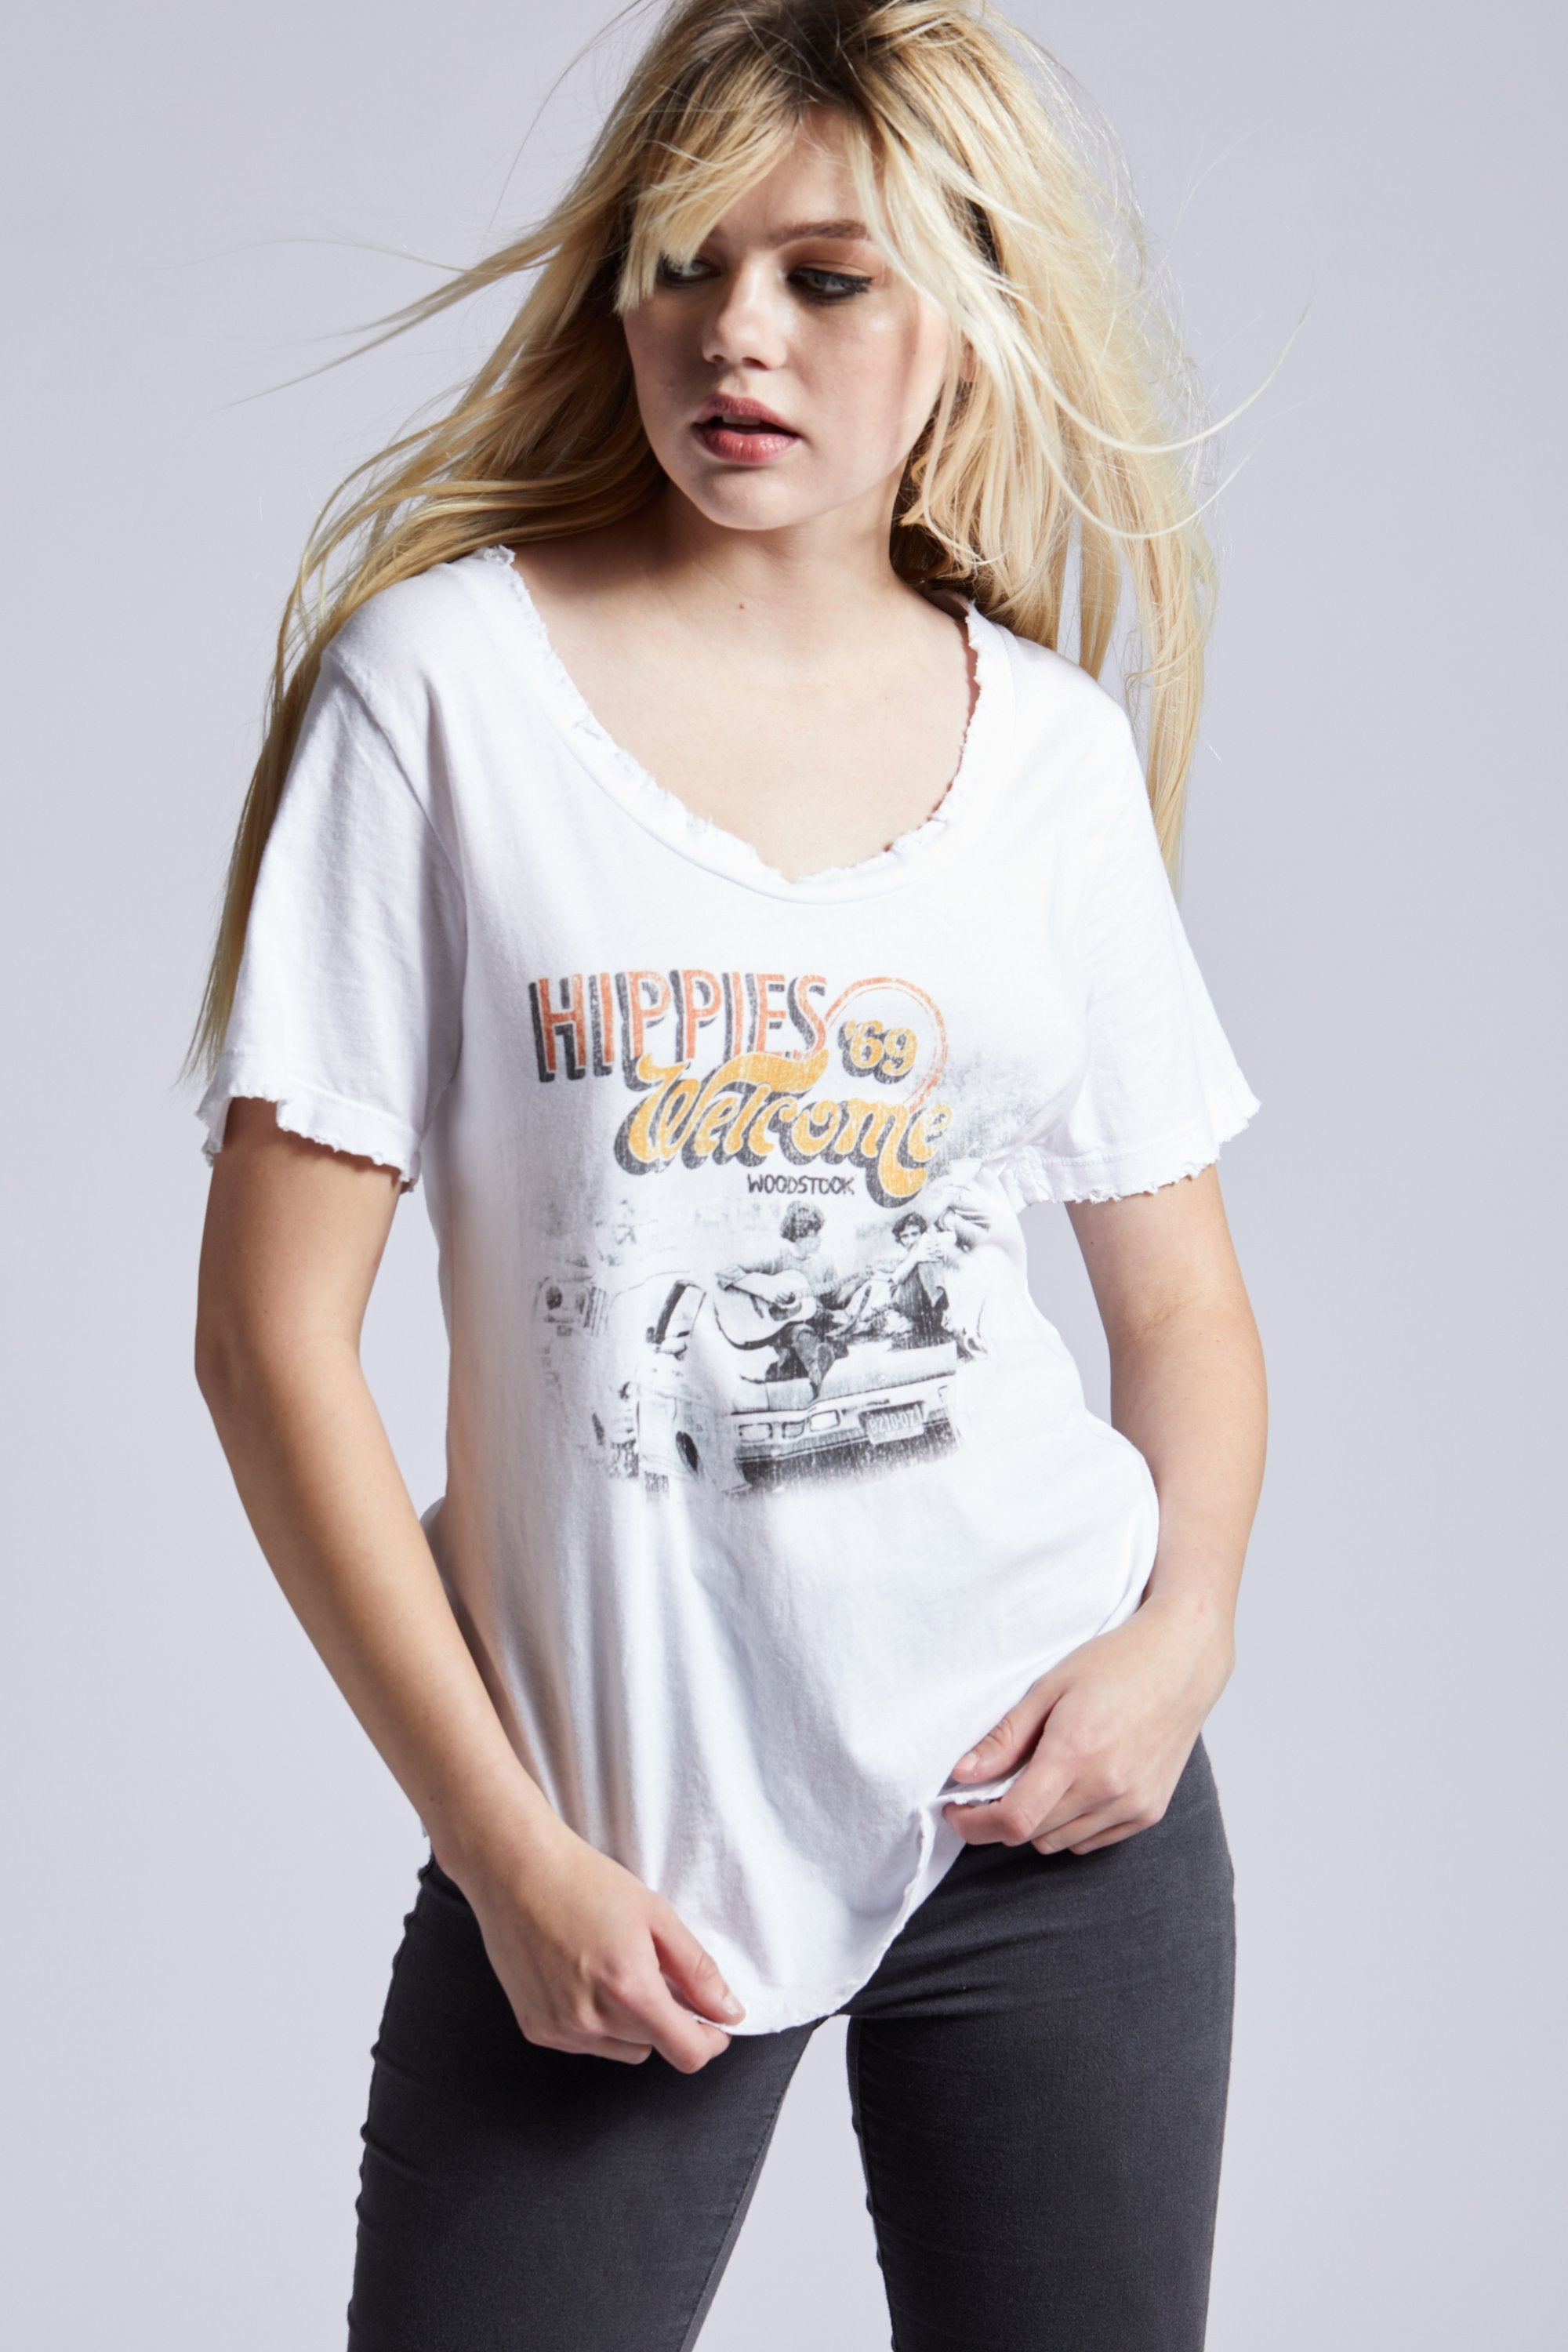 HIPPIES WOODSTOCK GRAPHIC TEE